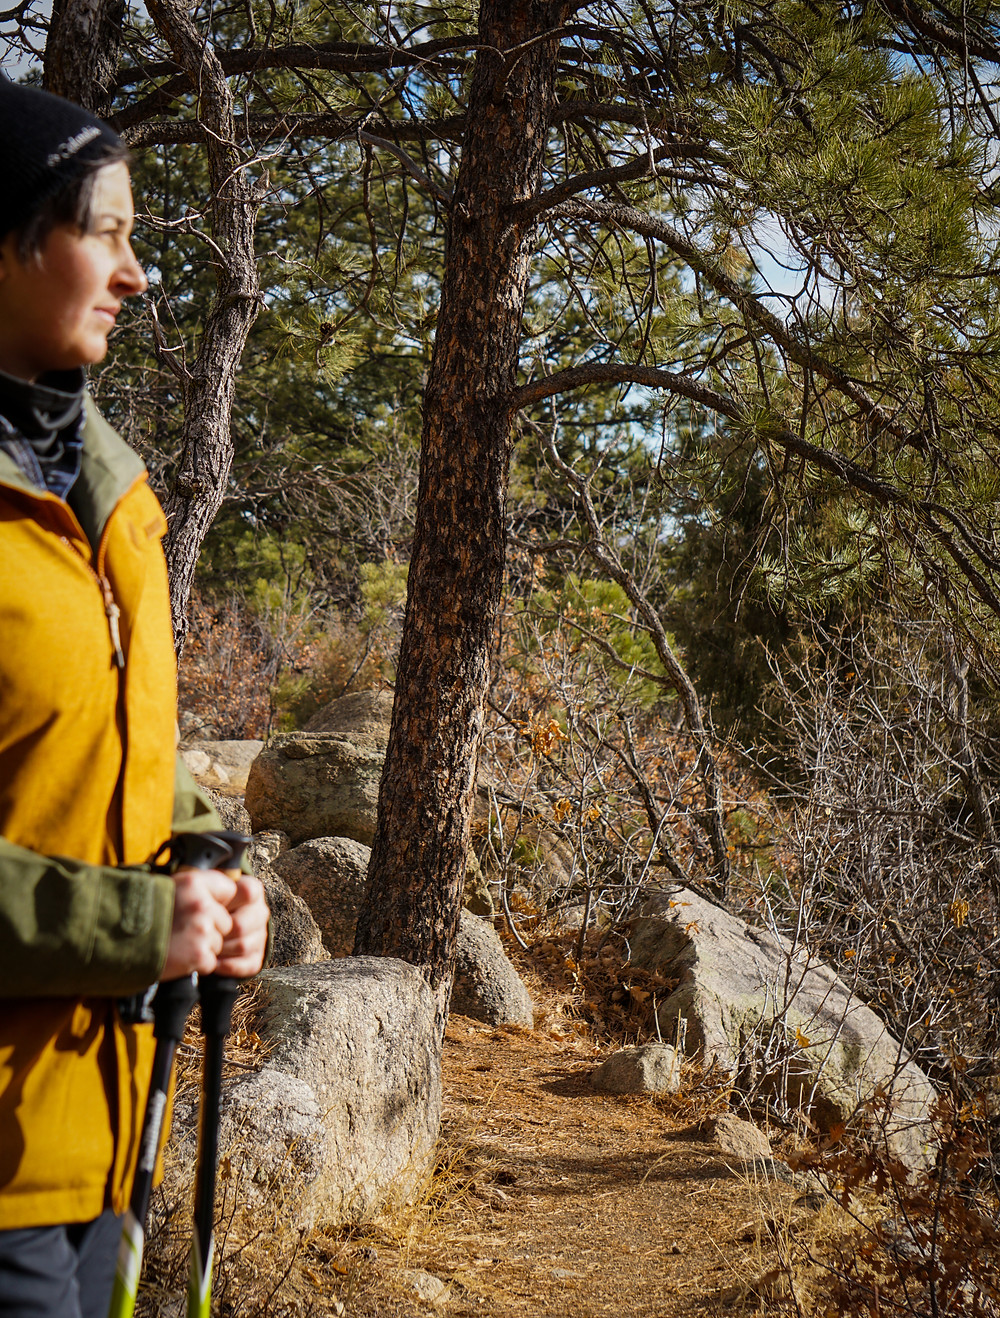 Trekking poles for hikers with disabilities